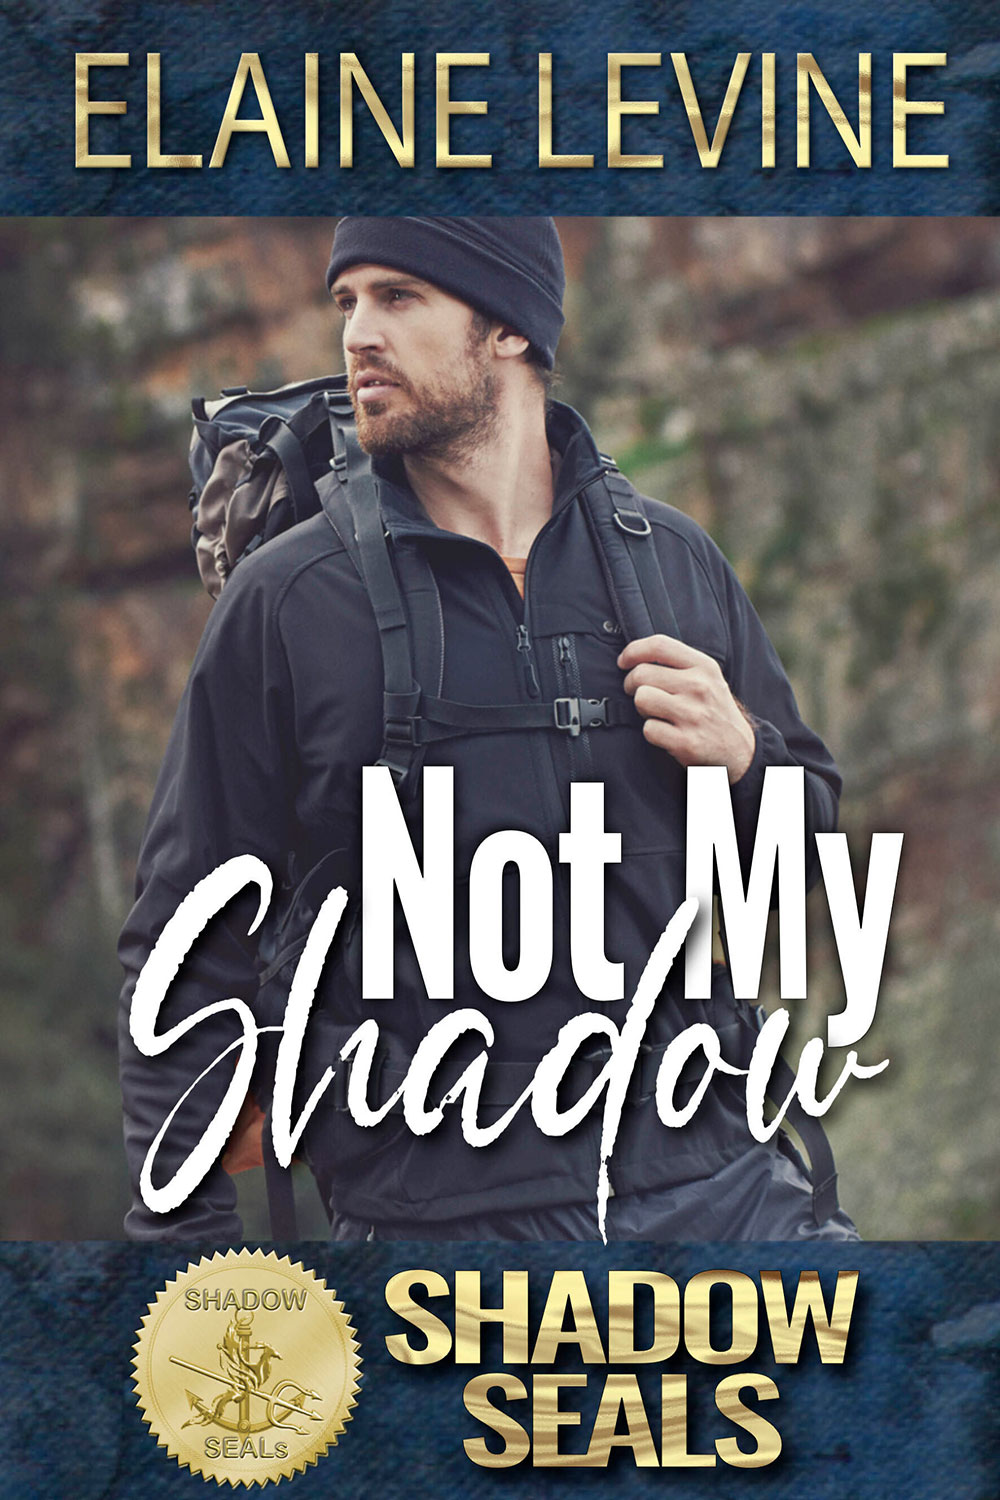 Not My Shadow by Elaine Lavine